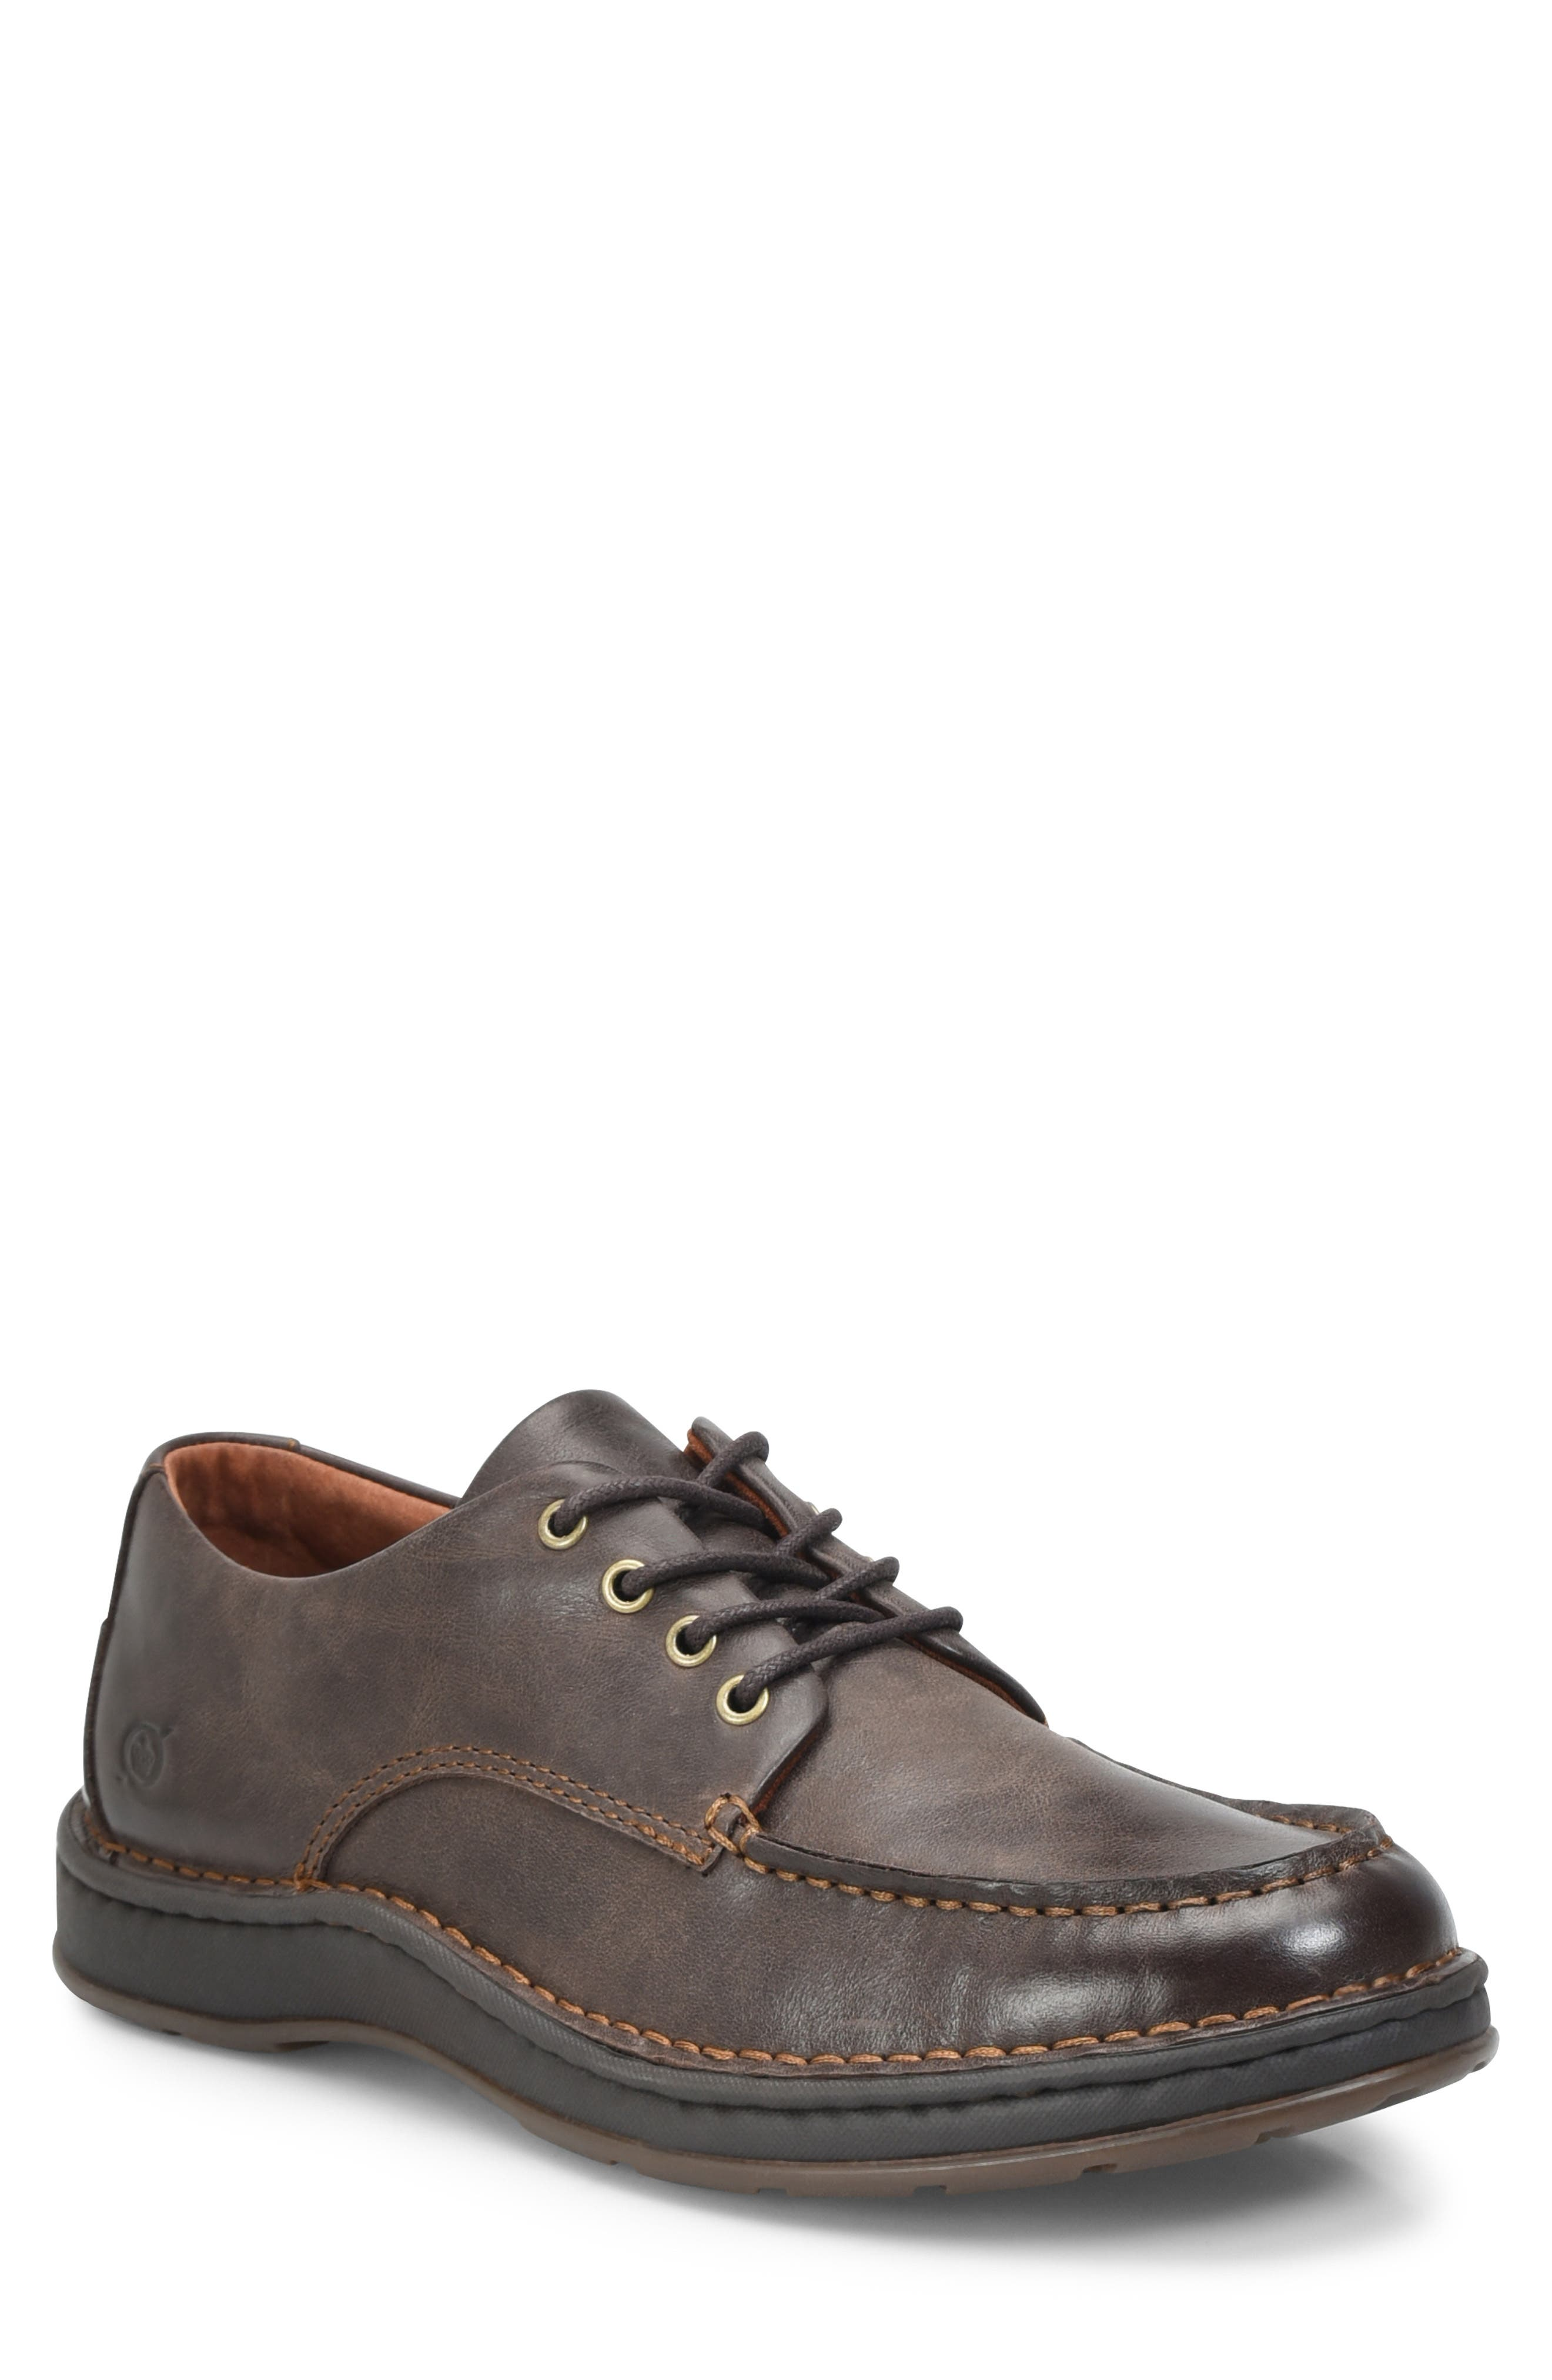 Leon Moc Toe Derby,                             Main thumbnail 1, color,                             DARK BROWN LEATHER